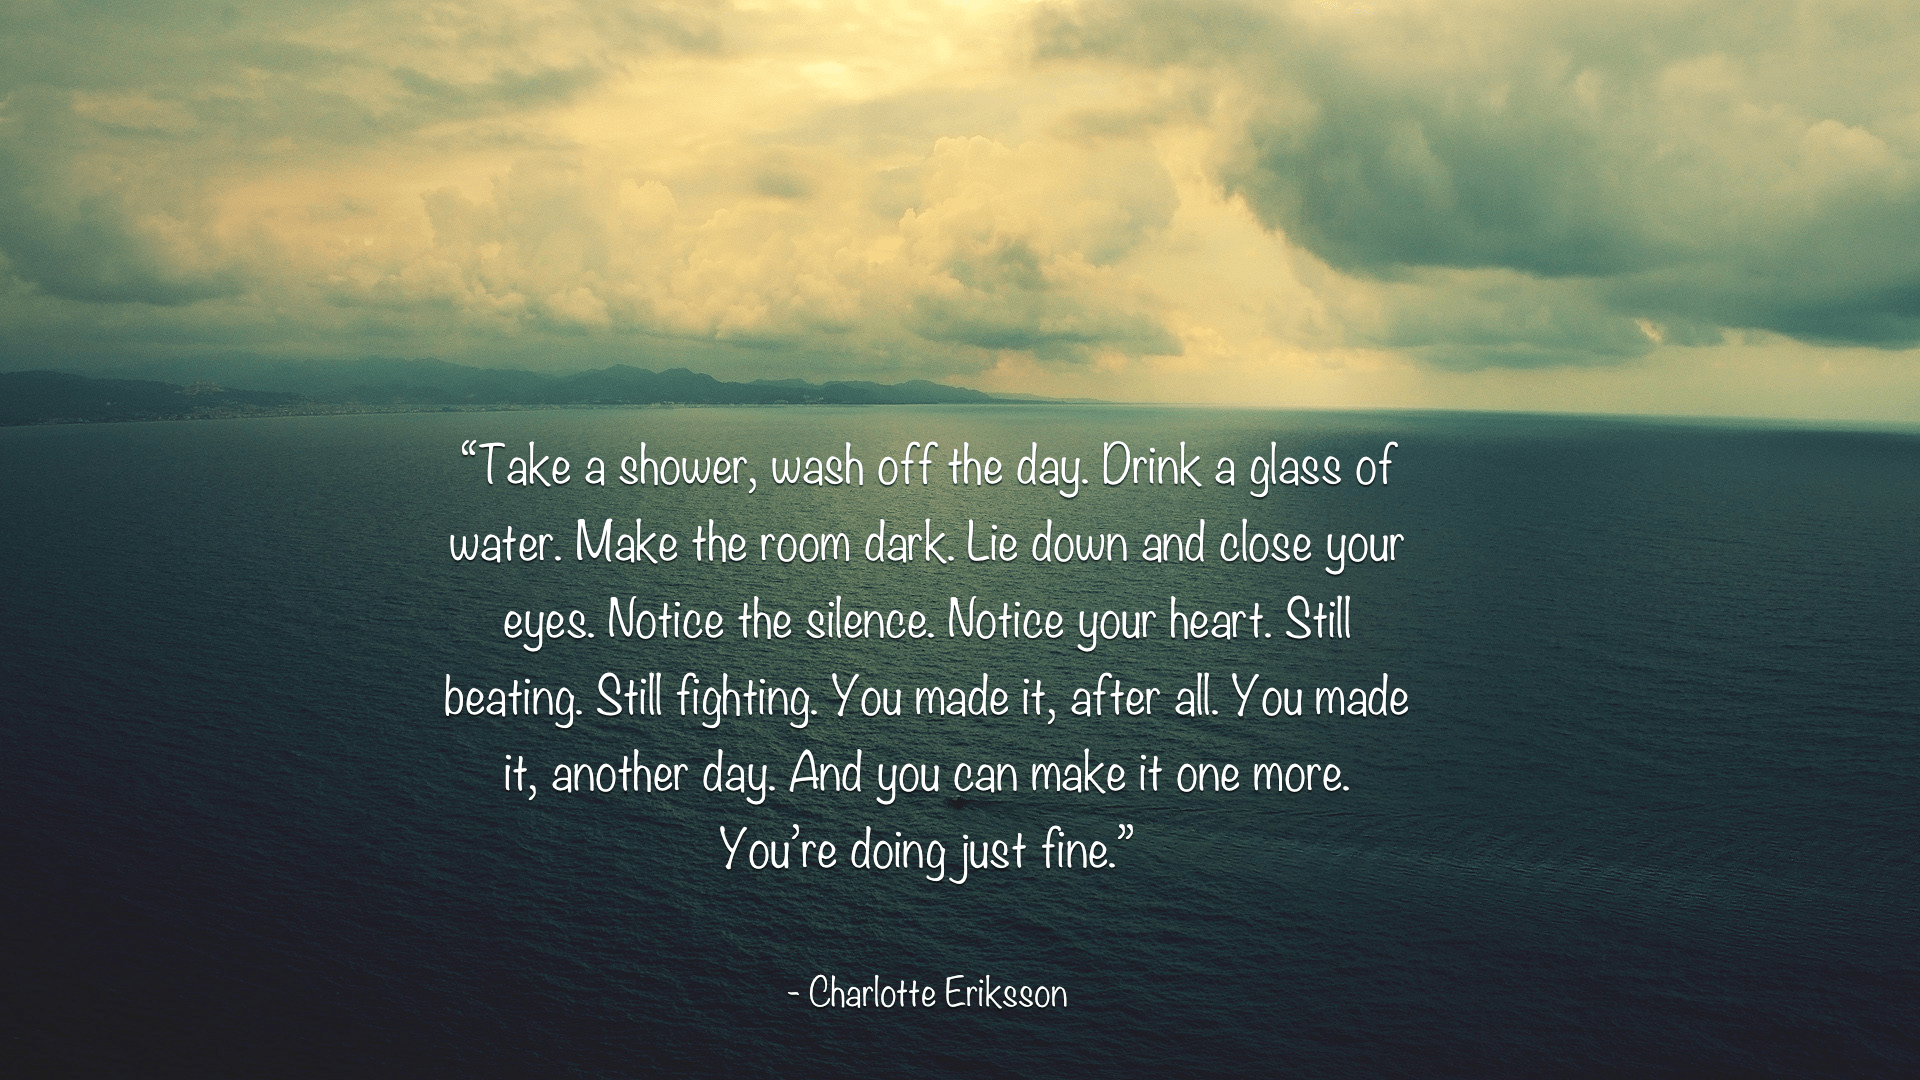 [Image] You're Doing Just Fine